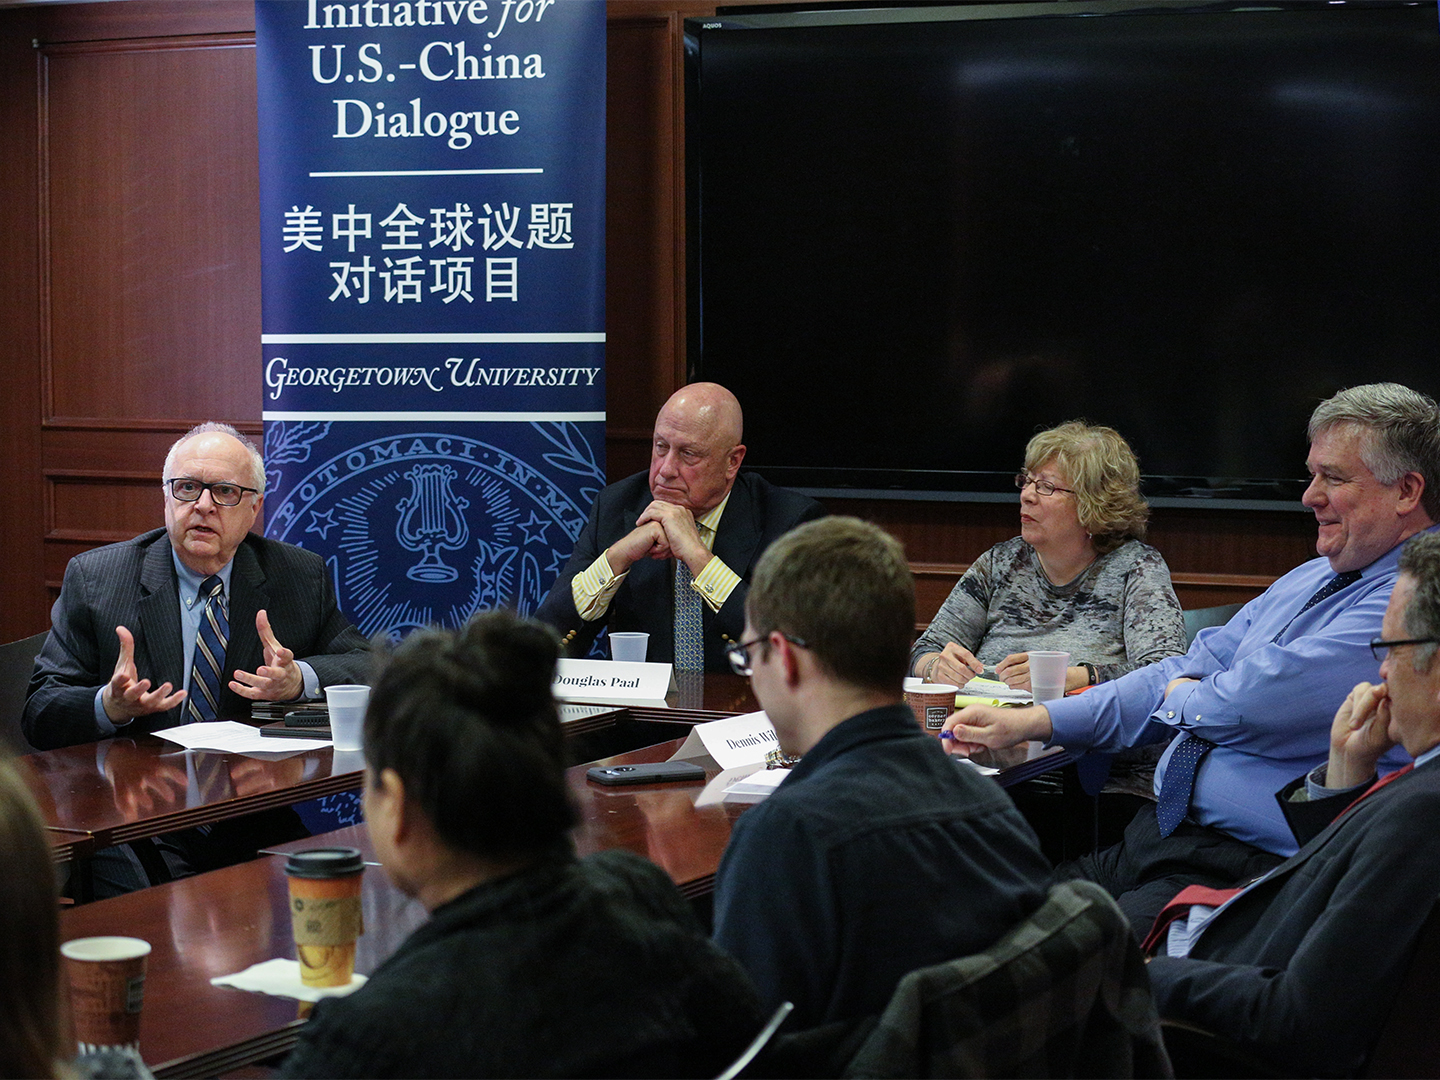 Robert Suettinger discusses the role of the National Security Council in the policy-making process during Tiananmen.